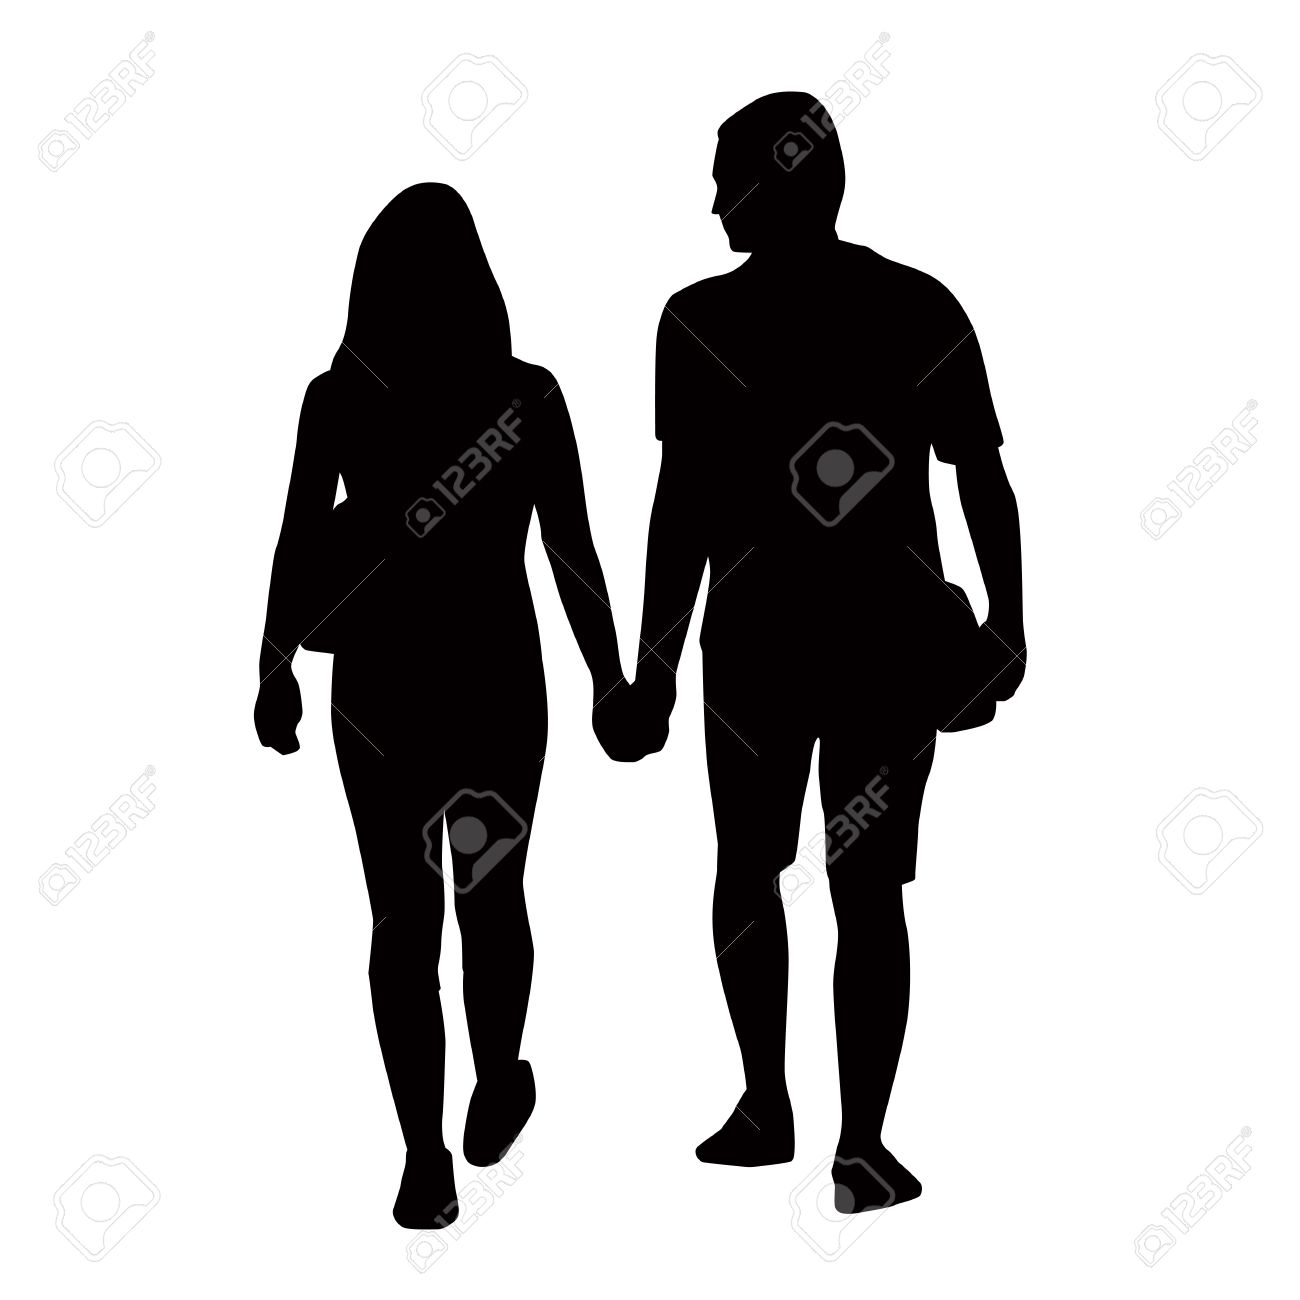 Couple Of Young People Holding Hands Silhouettes Royalty Free